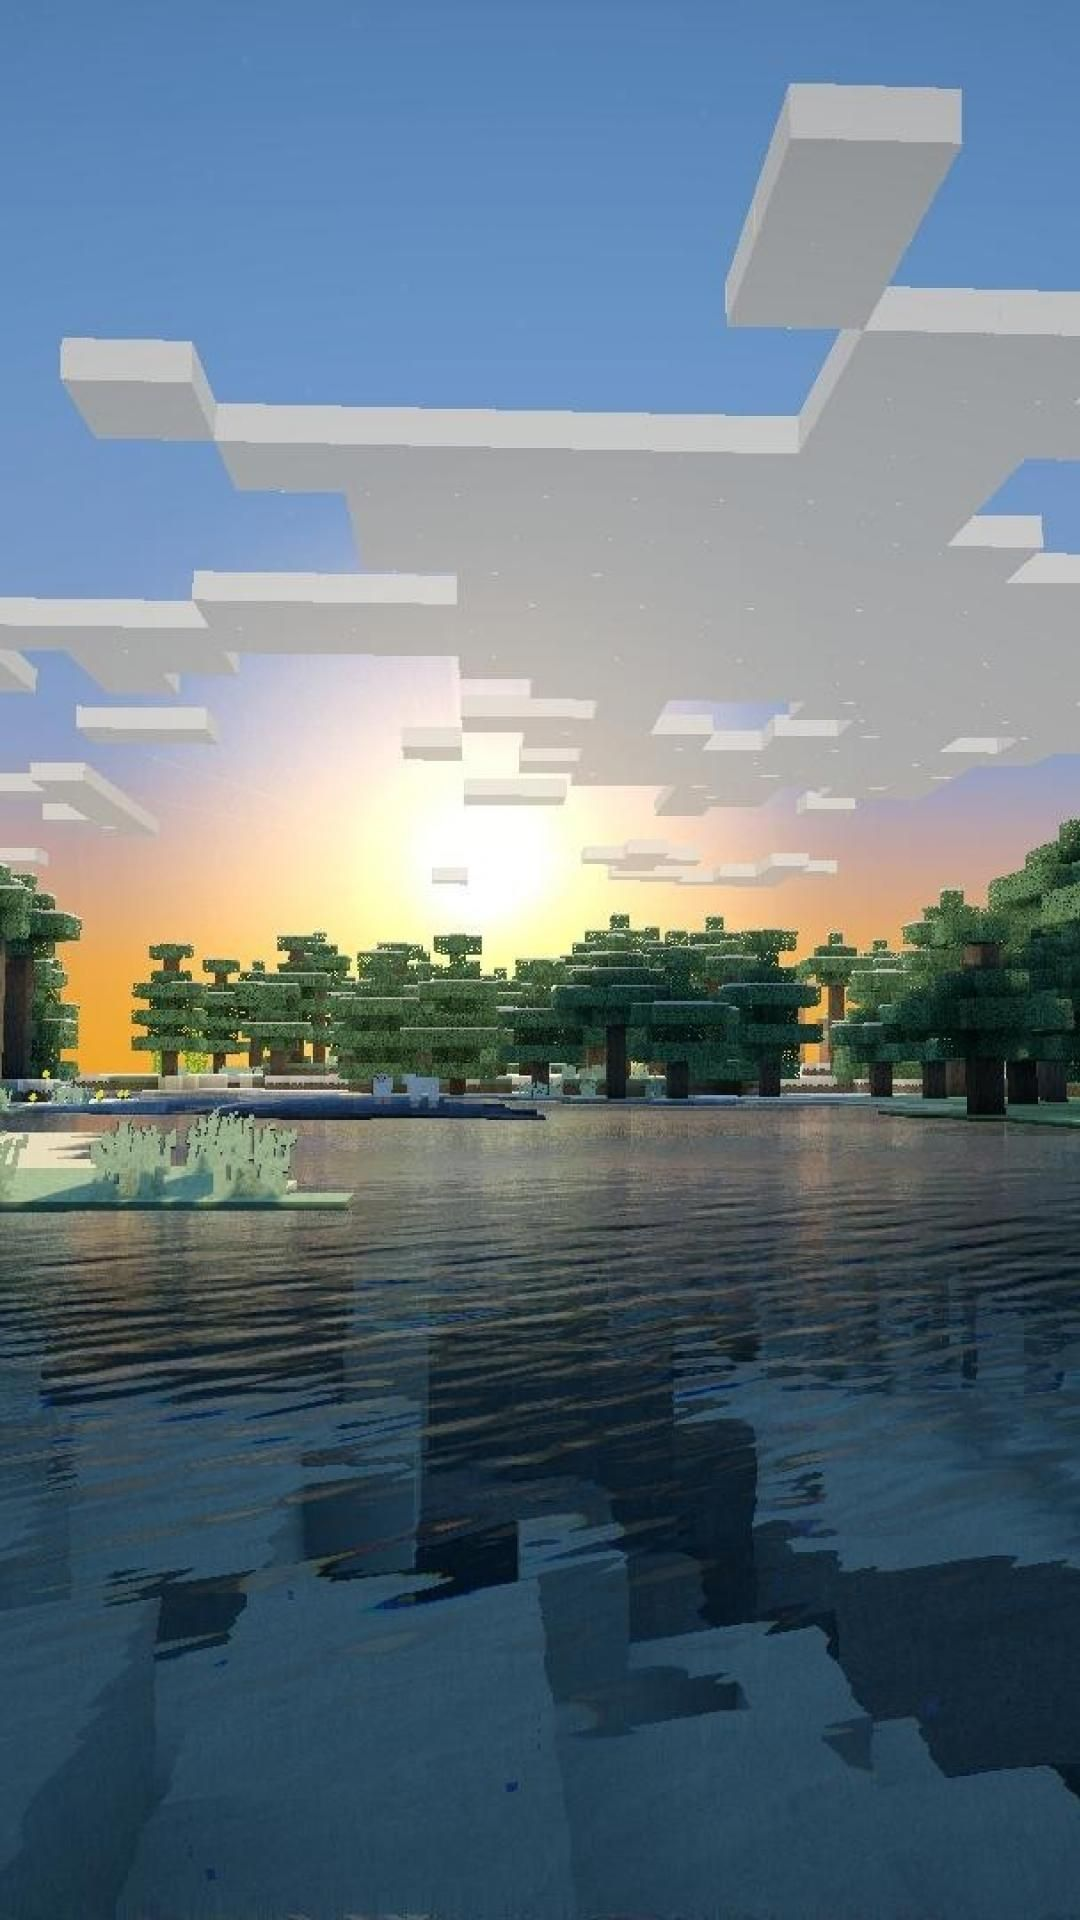 Minecraft Wallpaper Home Screen In 2020 Minecraft Wallpaper Minecraft Pictures Minecraft Images